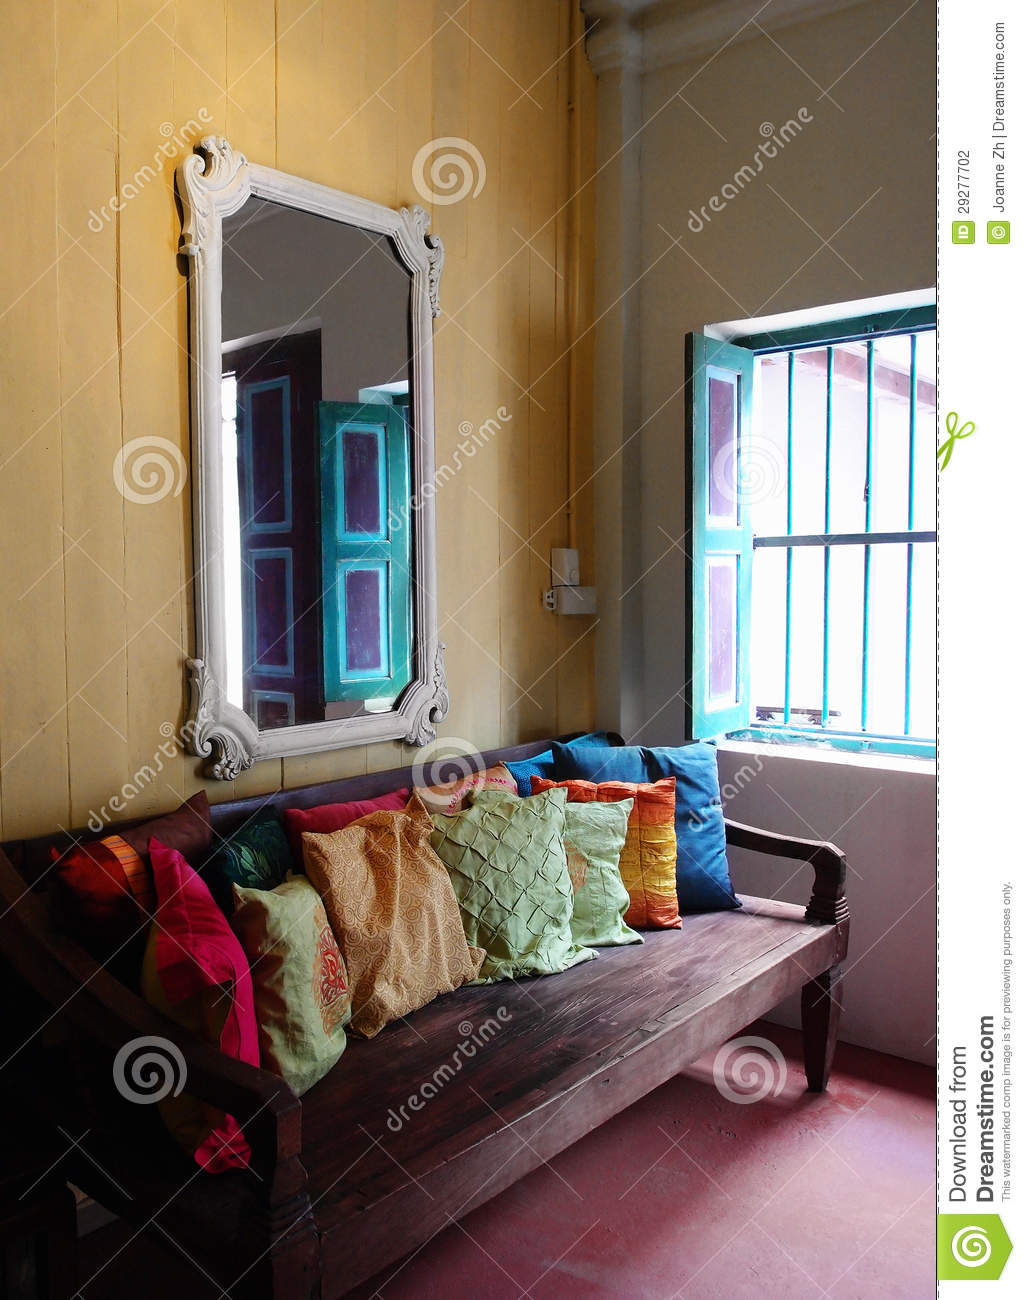 old ethnic asian house interior decor stock photography - image